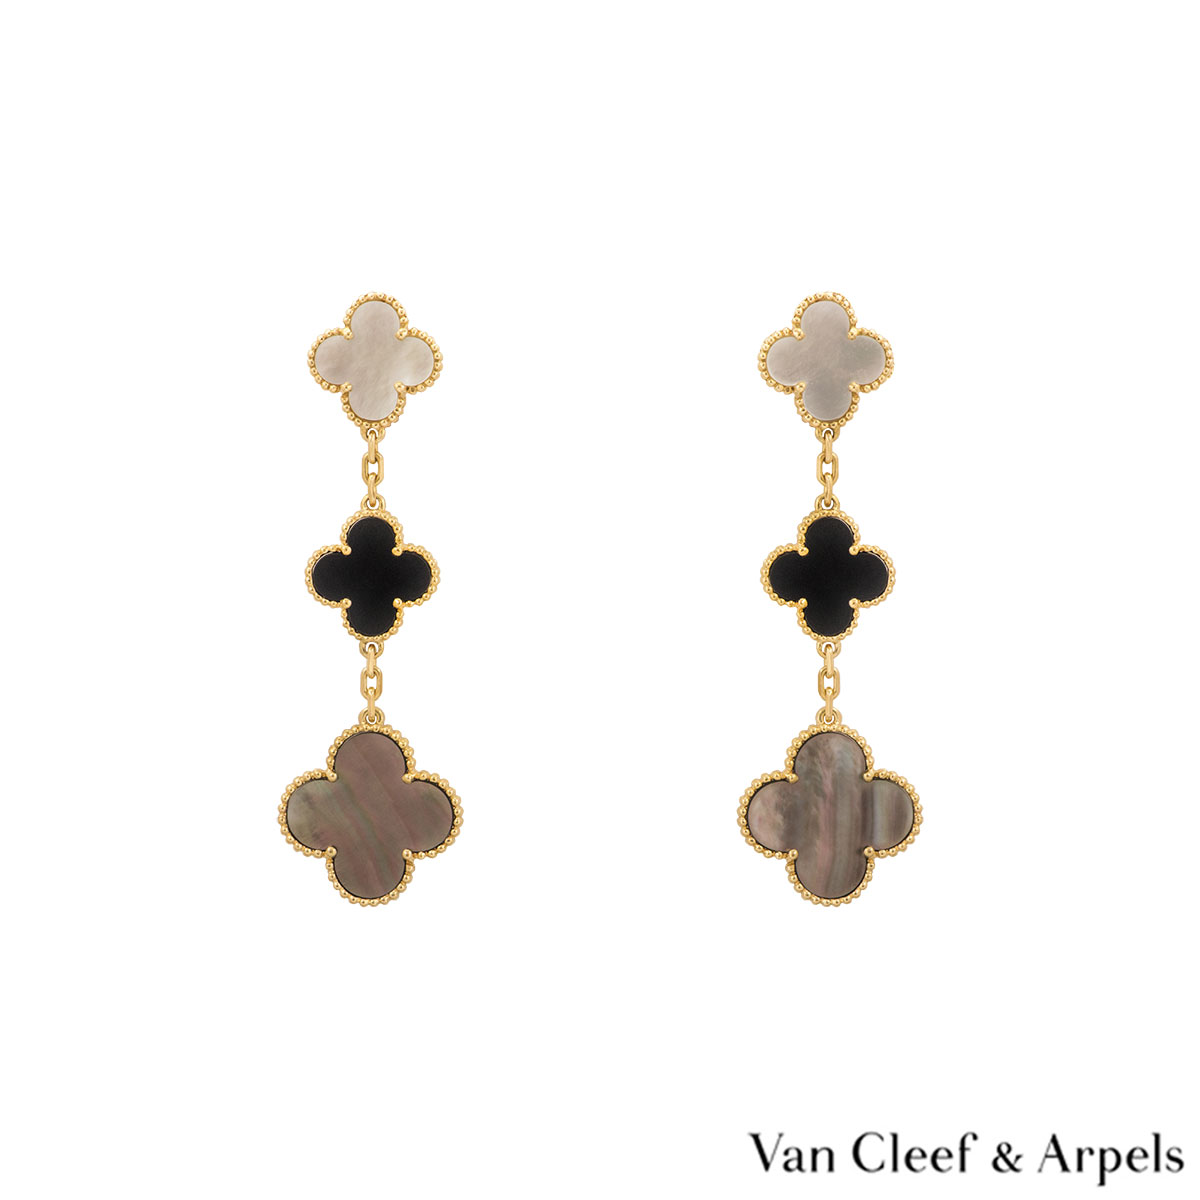 Van Cleef & Arpels Magic Alhambra Earrings VCARD79000